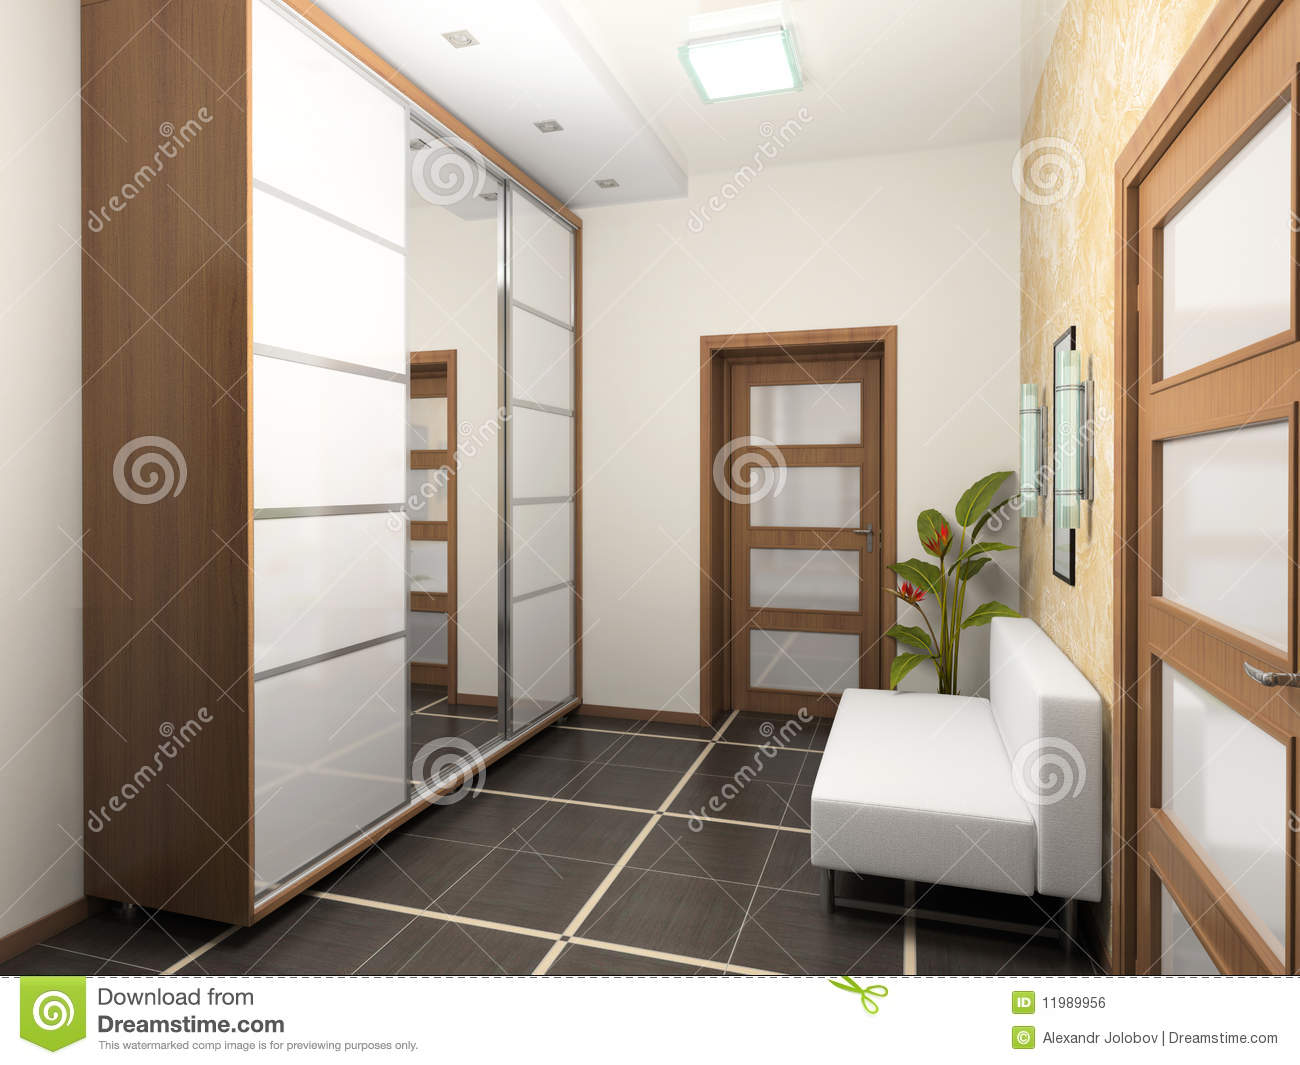 Hall interior royalty free stock image image 11989956 for Hall interior images